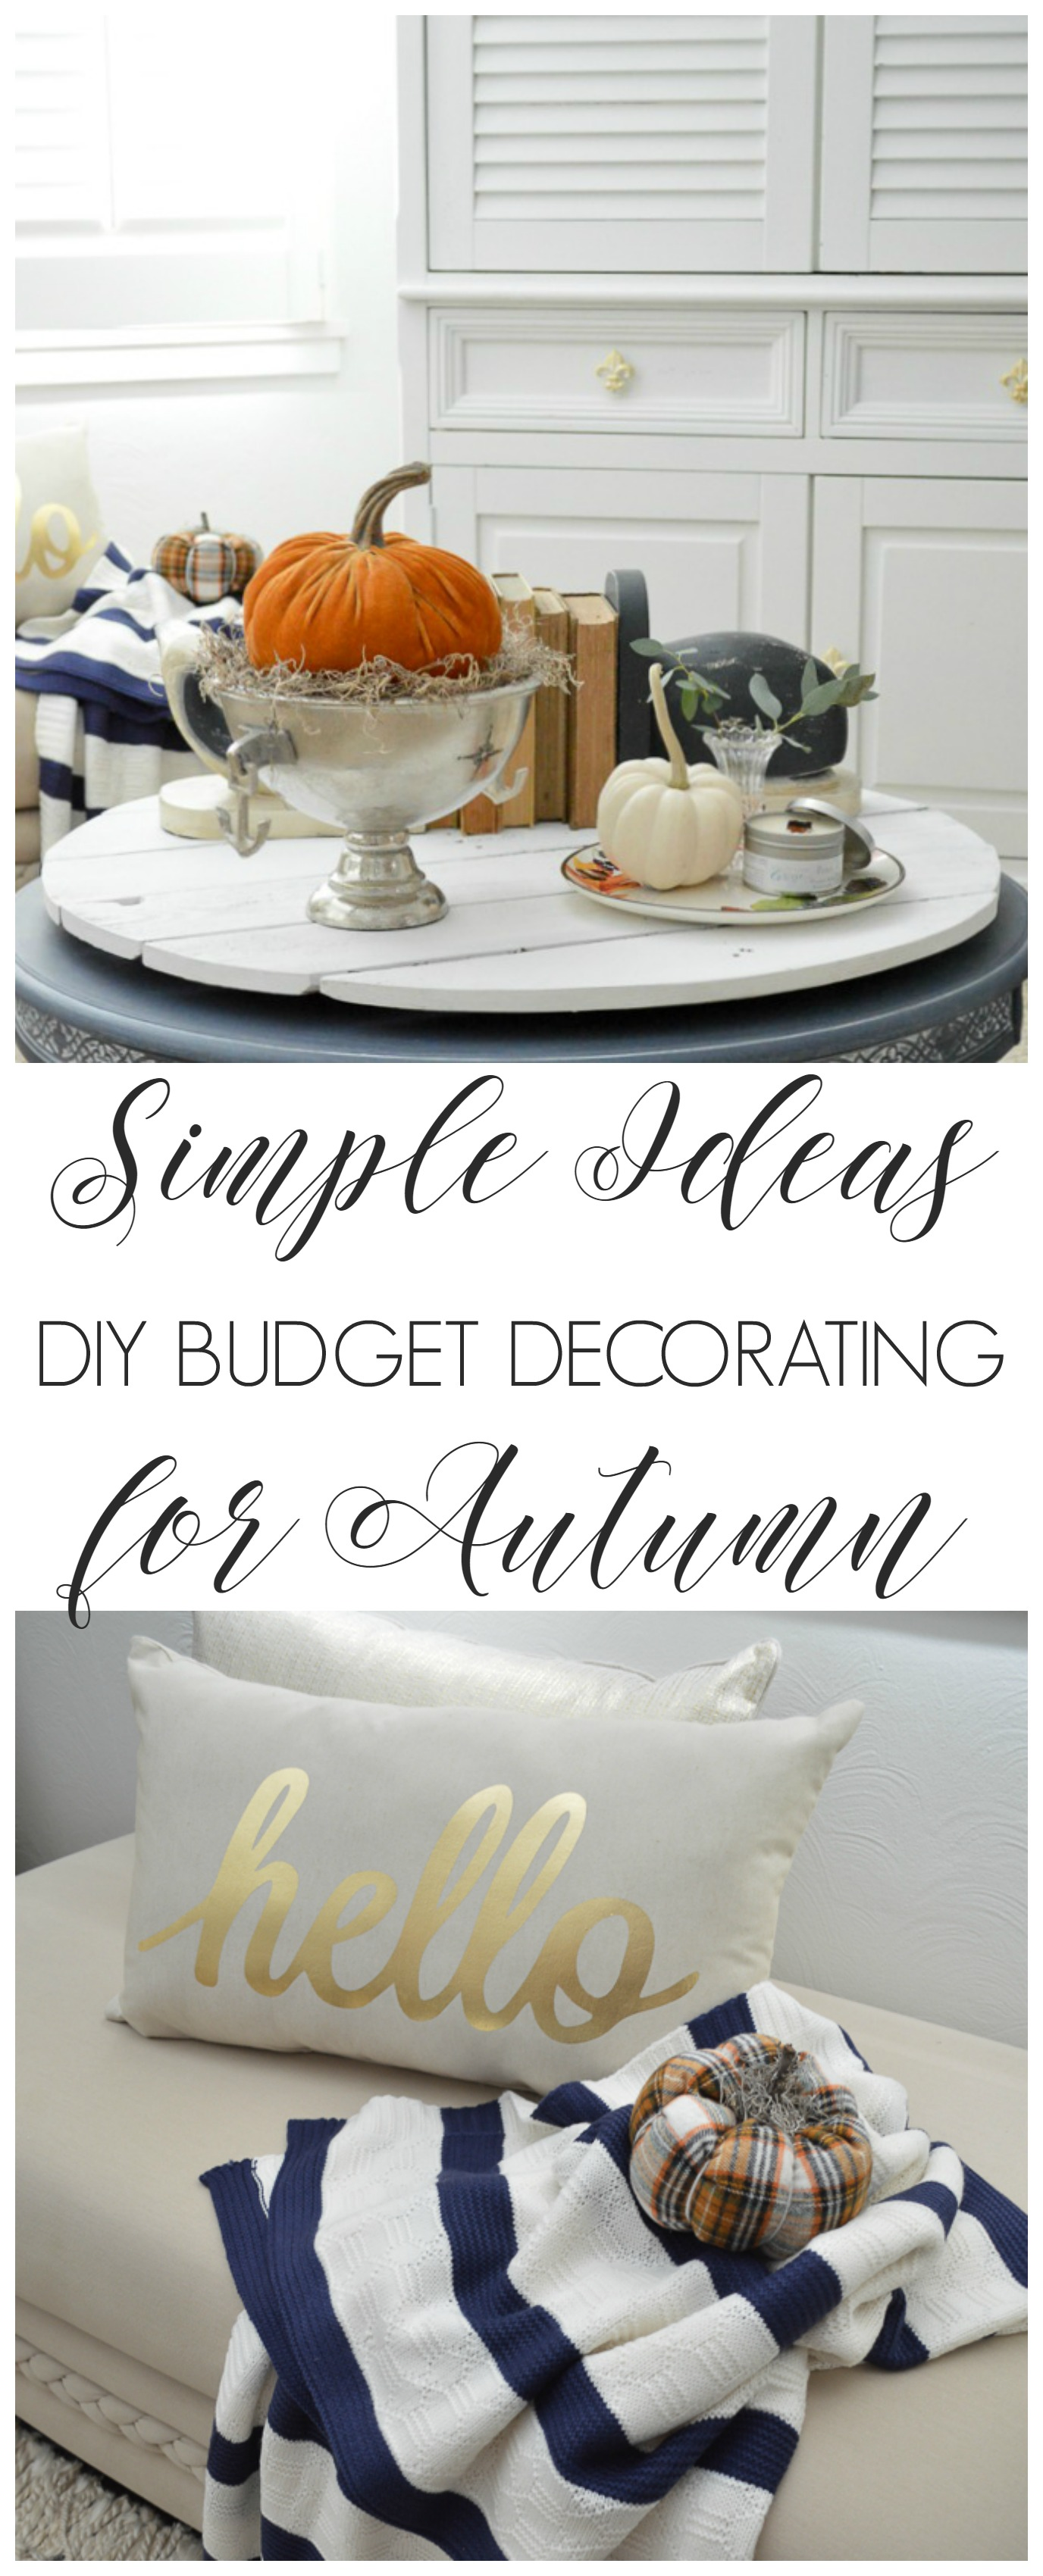 Simple Ideas, DIY decorating for Autumn - Fall Home Tour